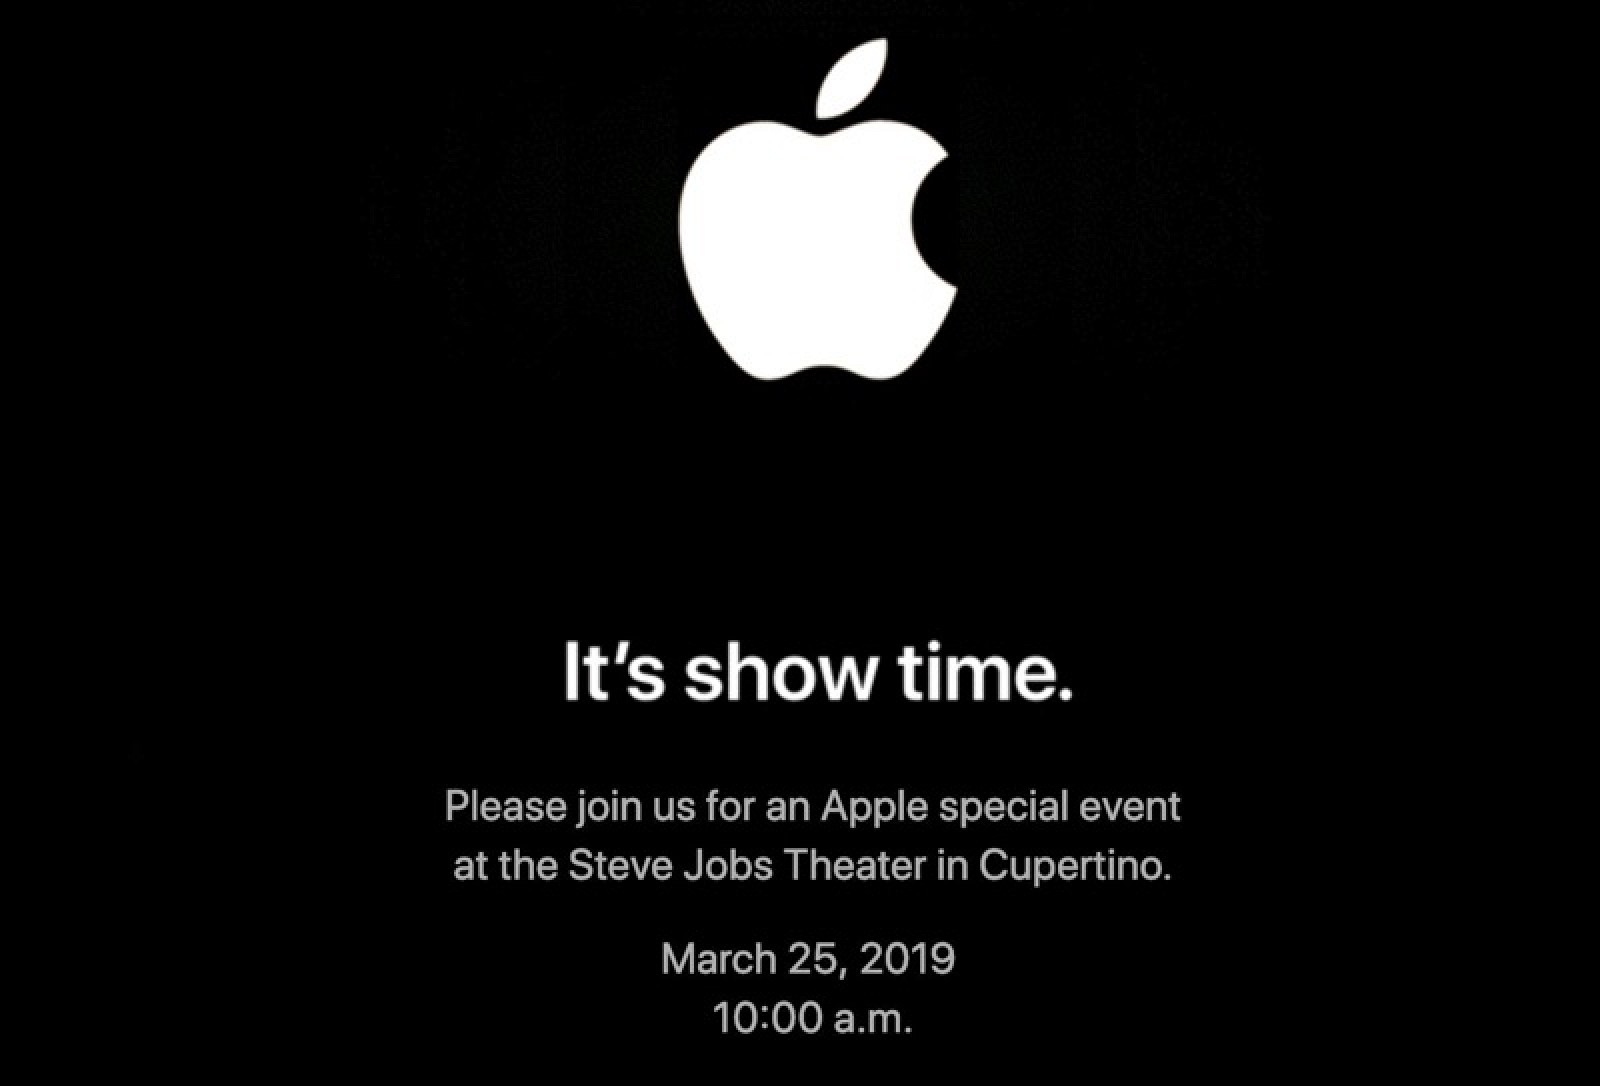 Apple's 2019 Event Plans: New Products and Software Coming